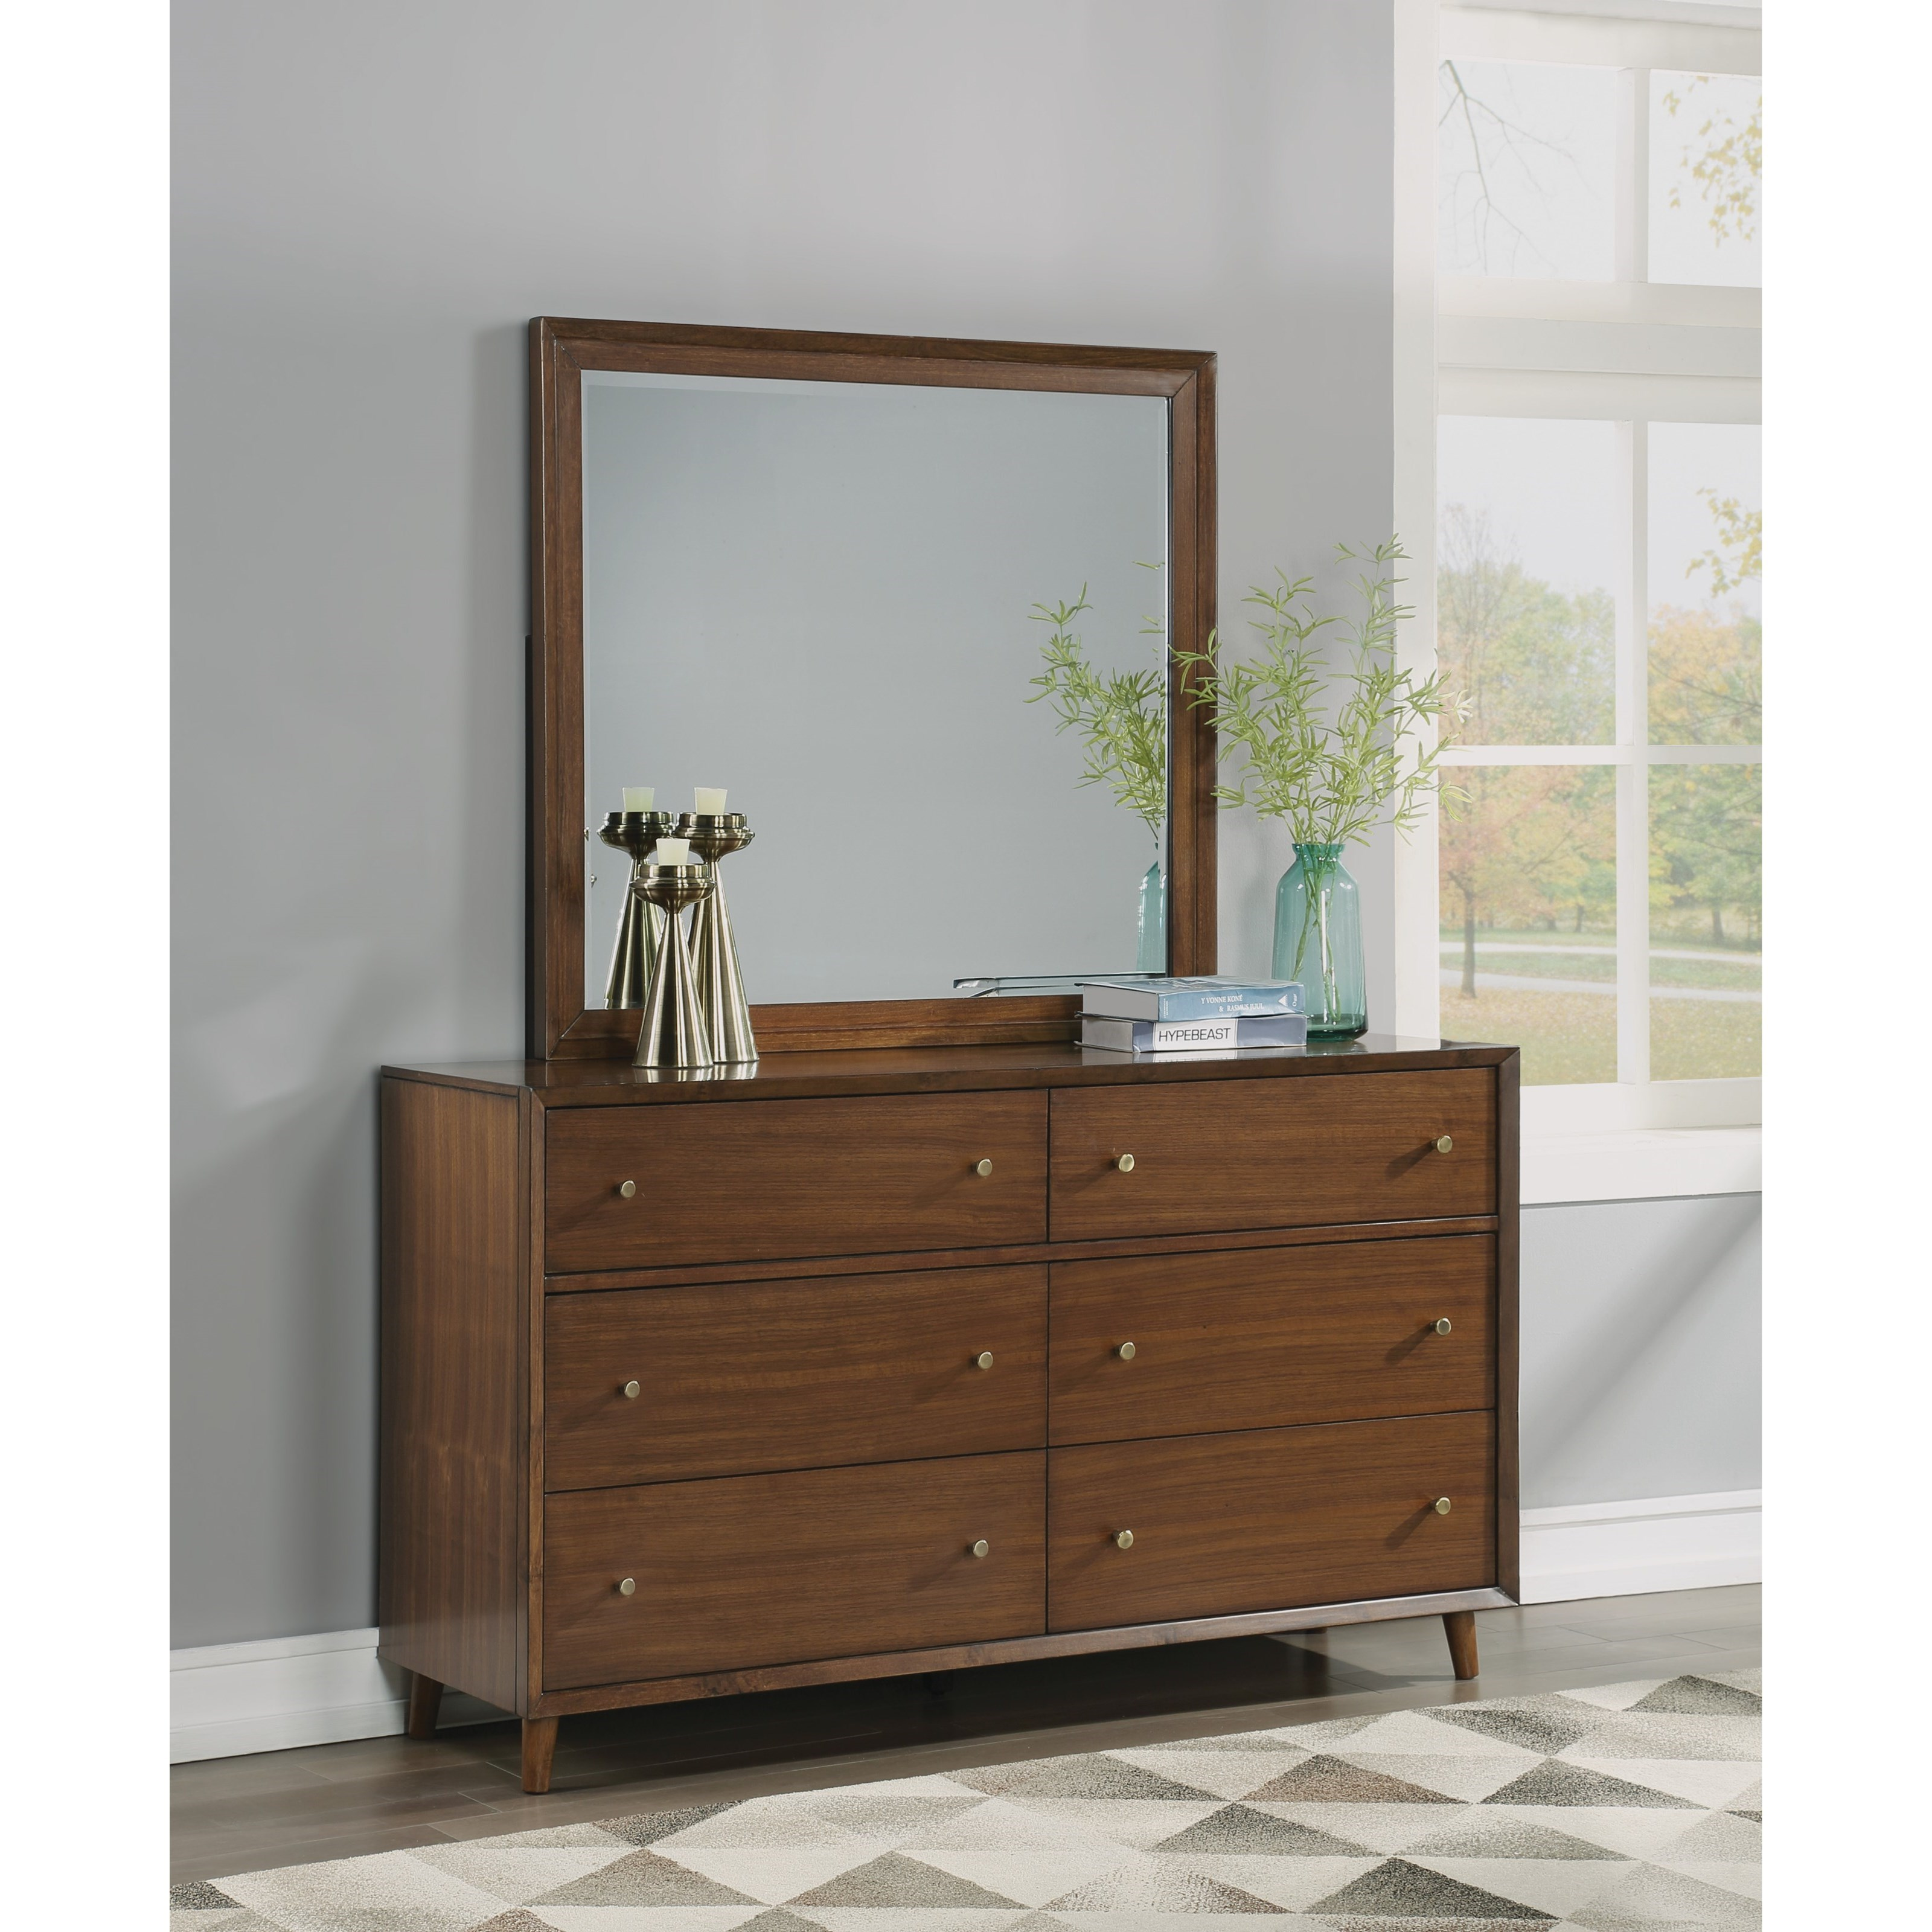 Ludwig Dresser and Mirror Set by Flexsteel Wynwood Collection at Story & Lee Furniture